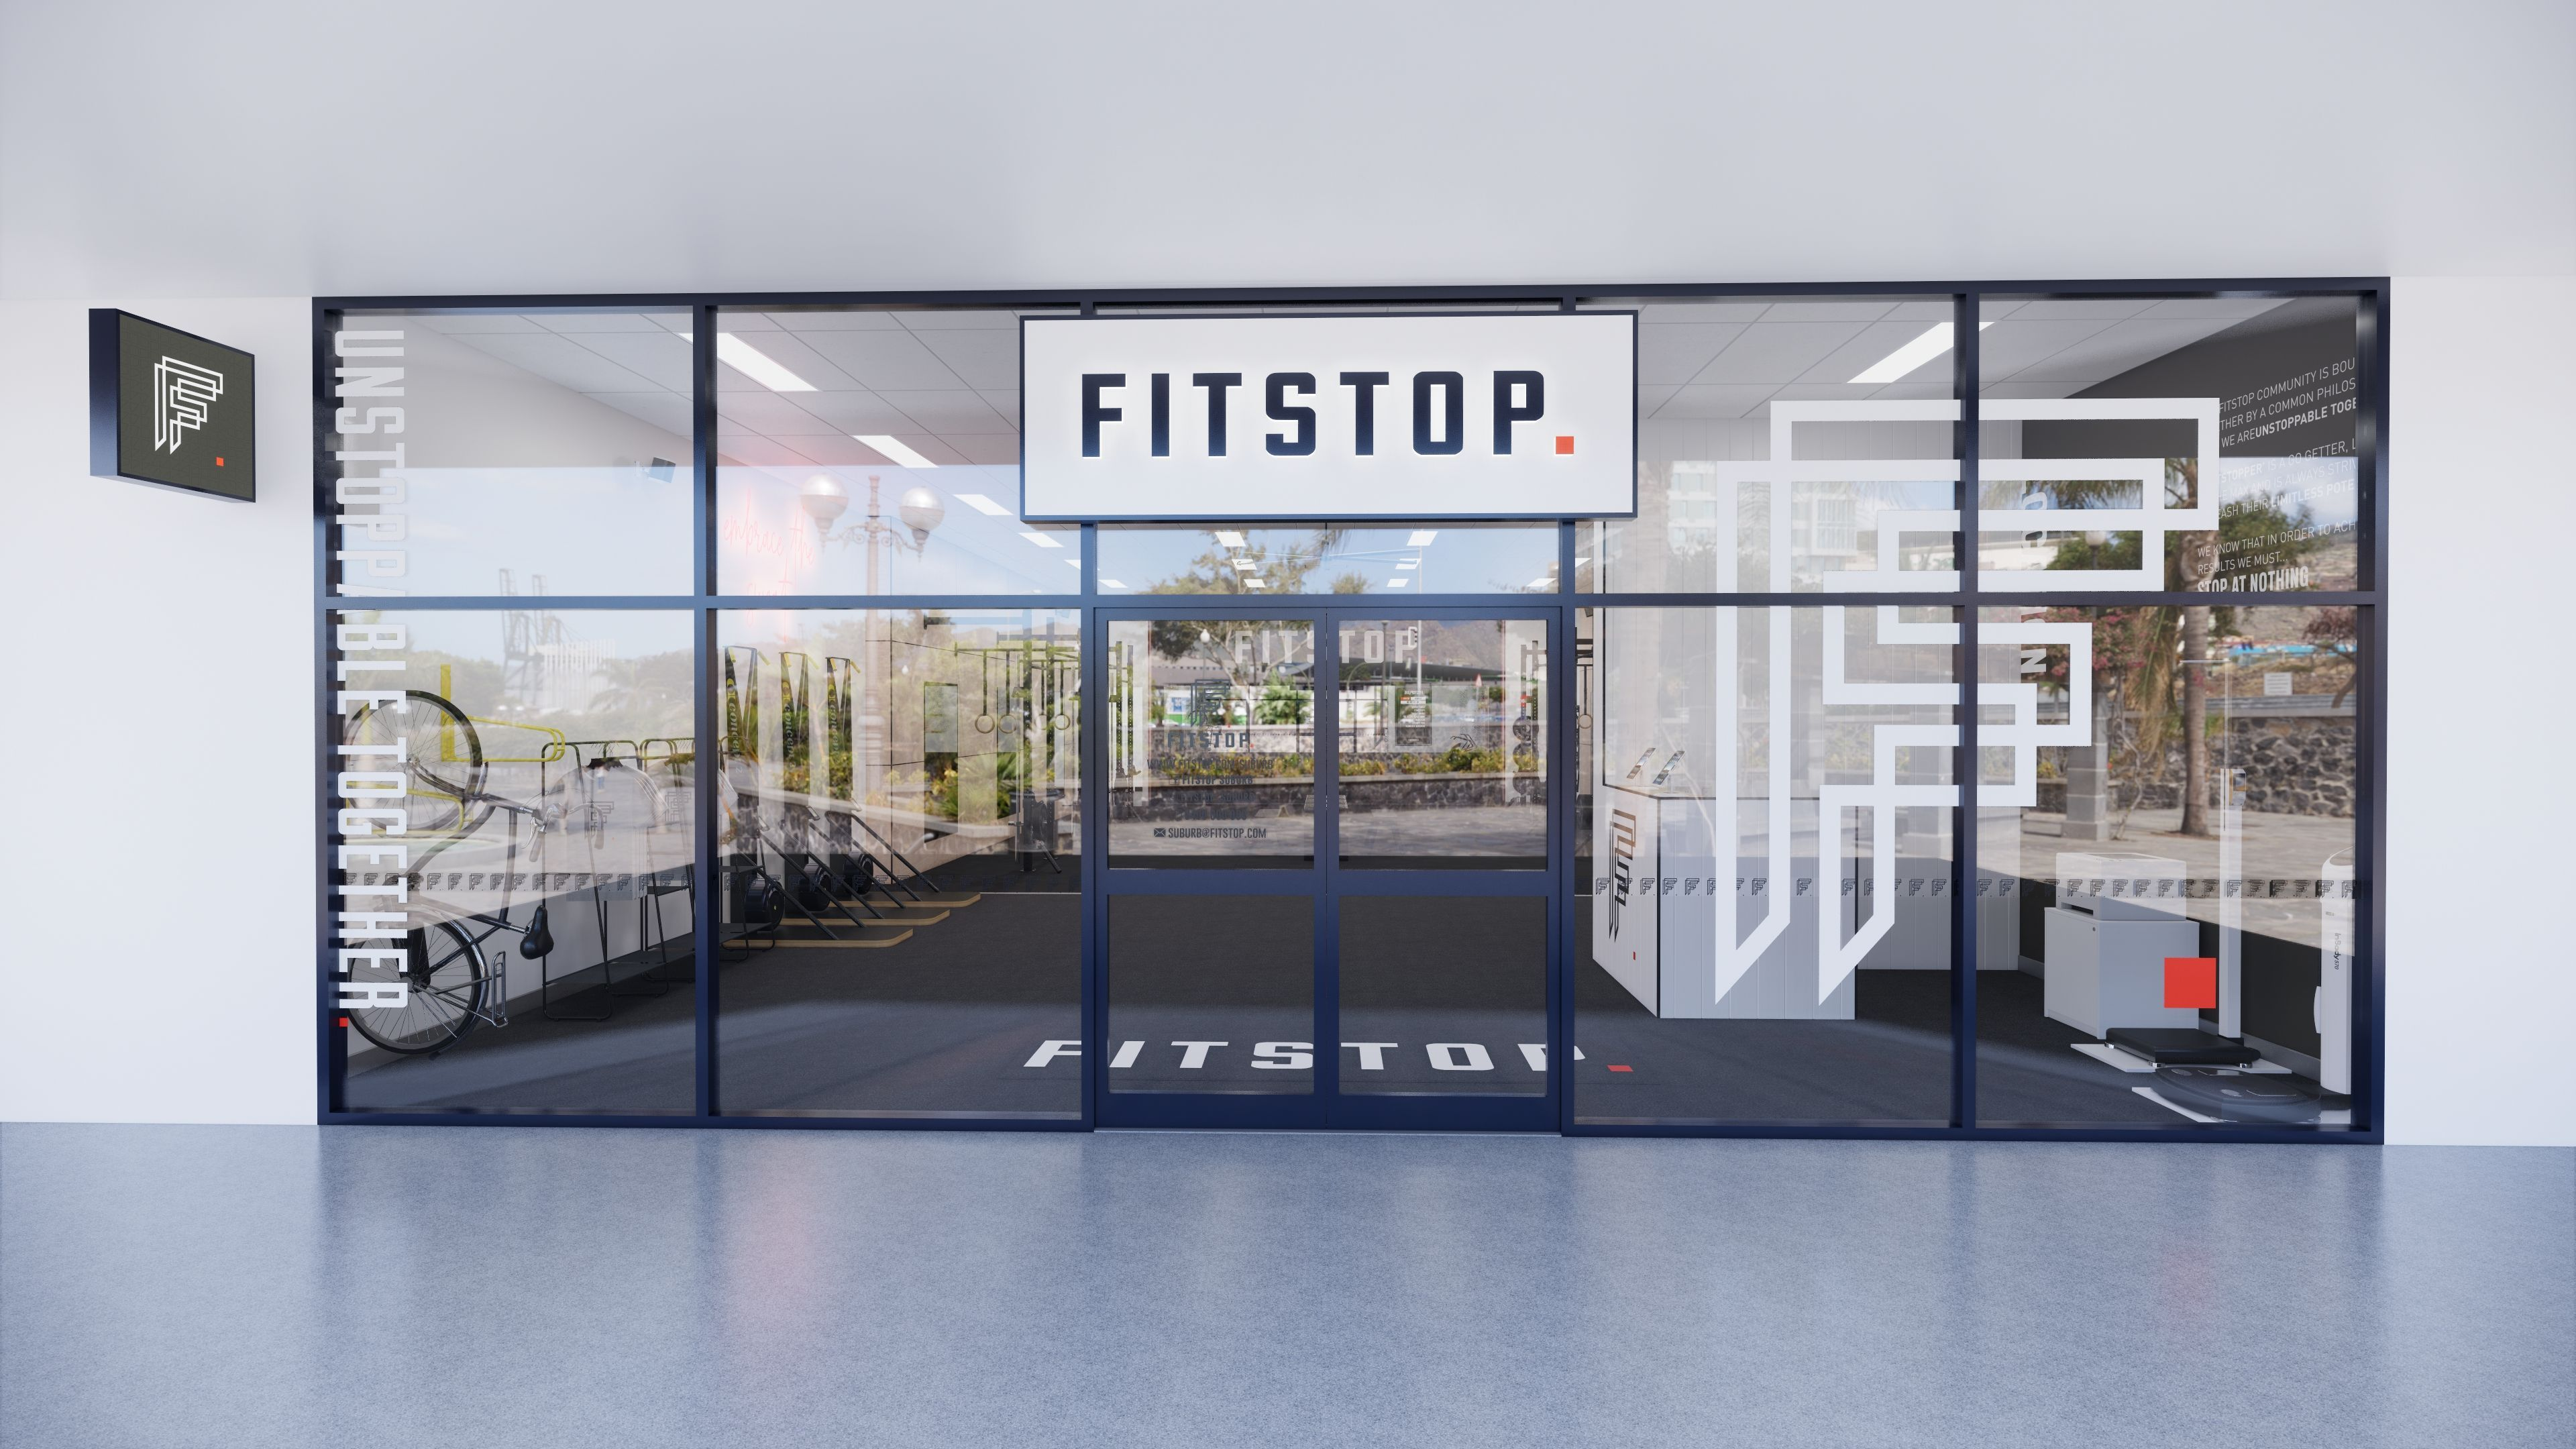 Fitstop reveals plan to double footprint this year   Inside Franchise Business Executive